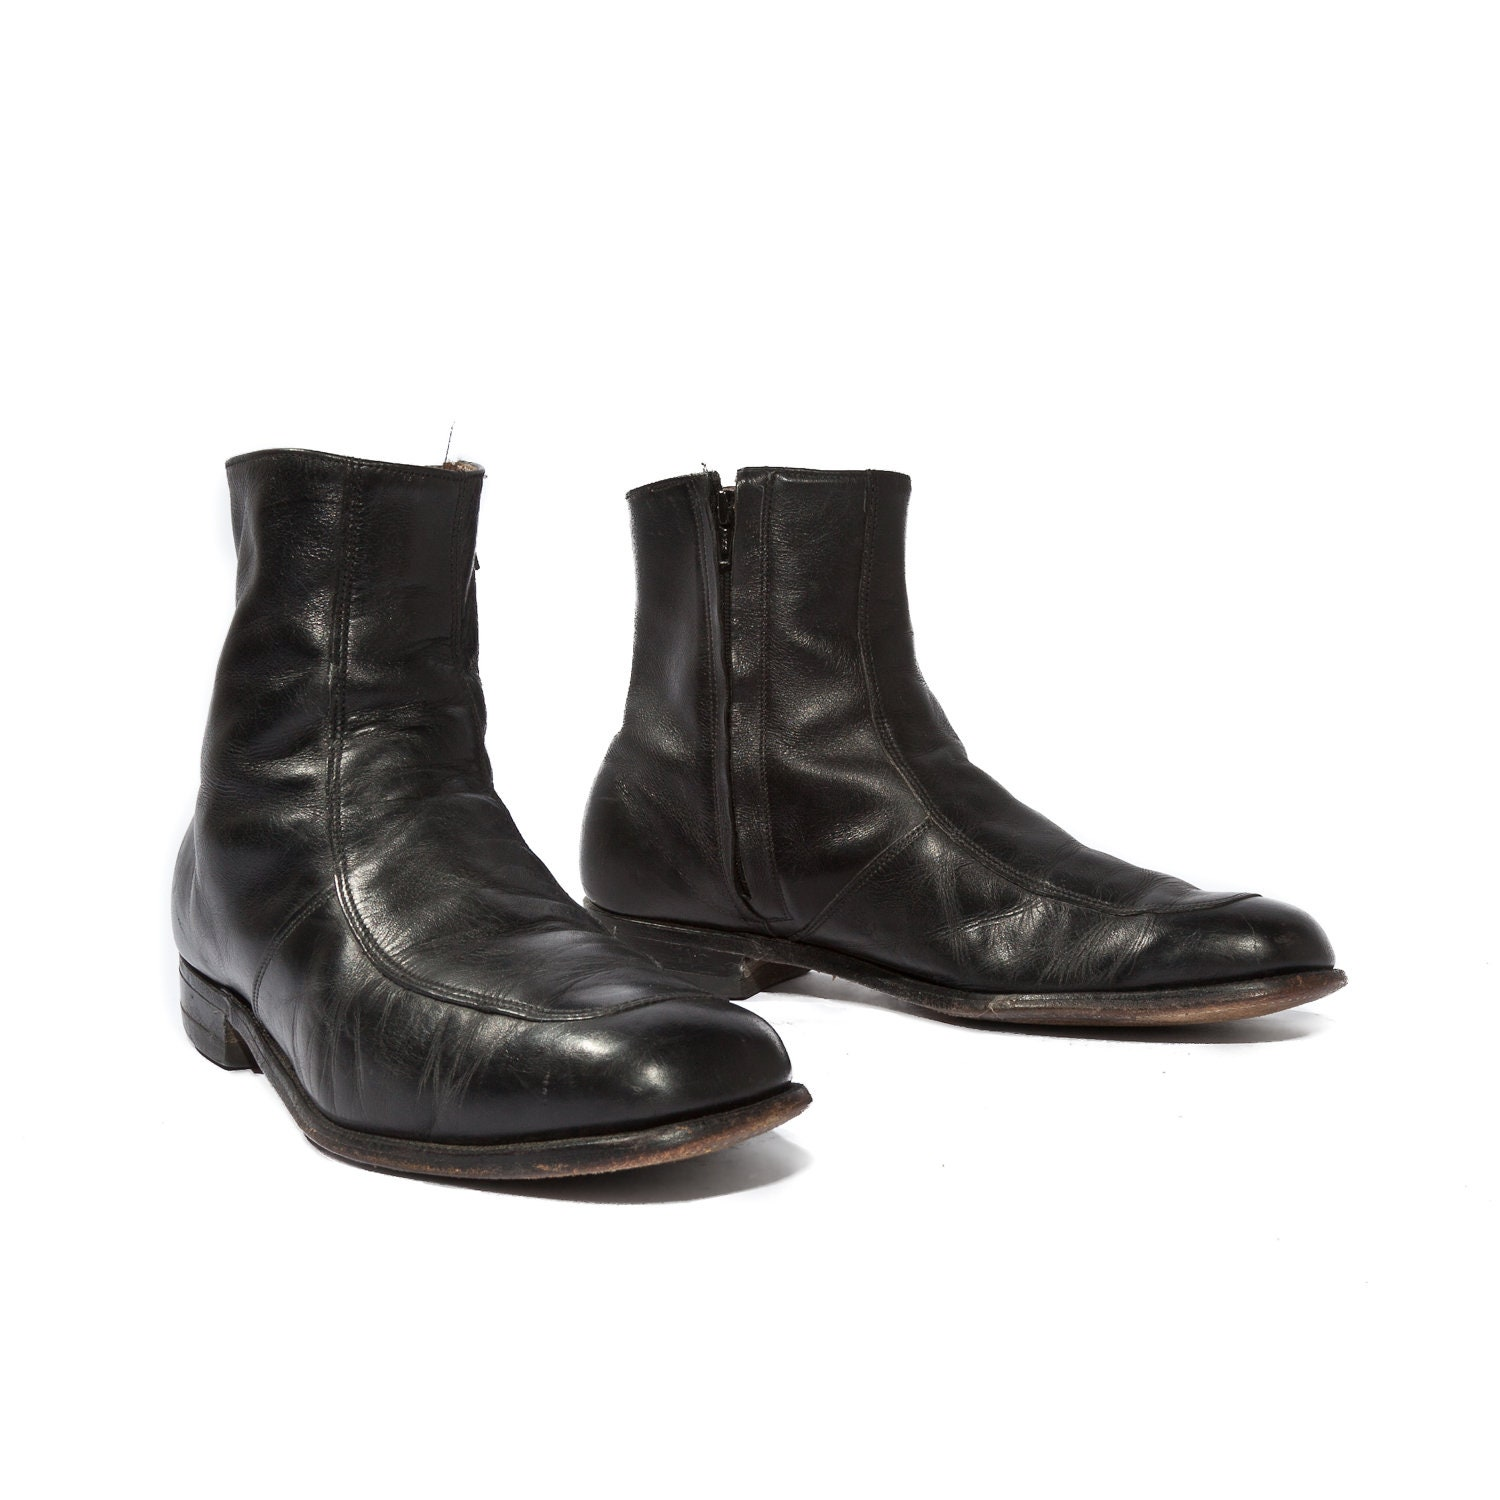 vintage s beatle boots black leather by rabbithousevintage